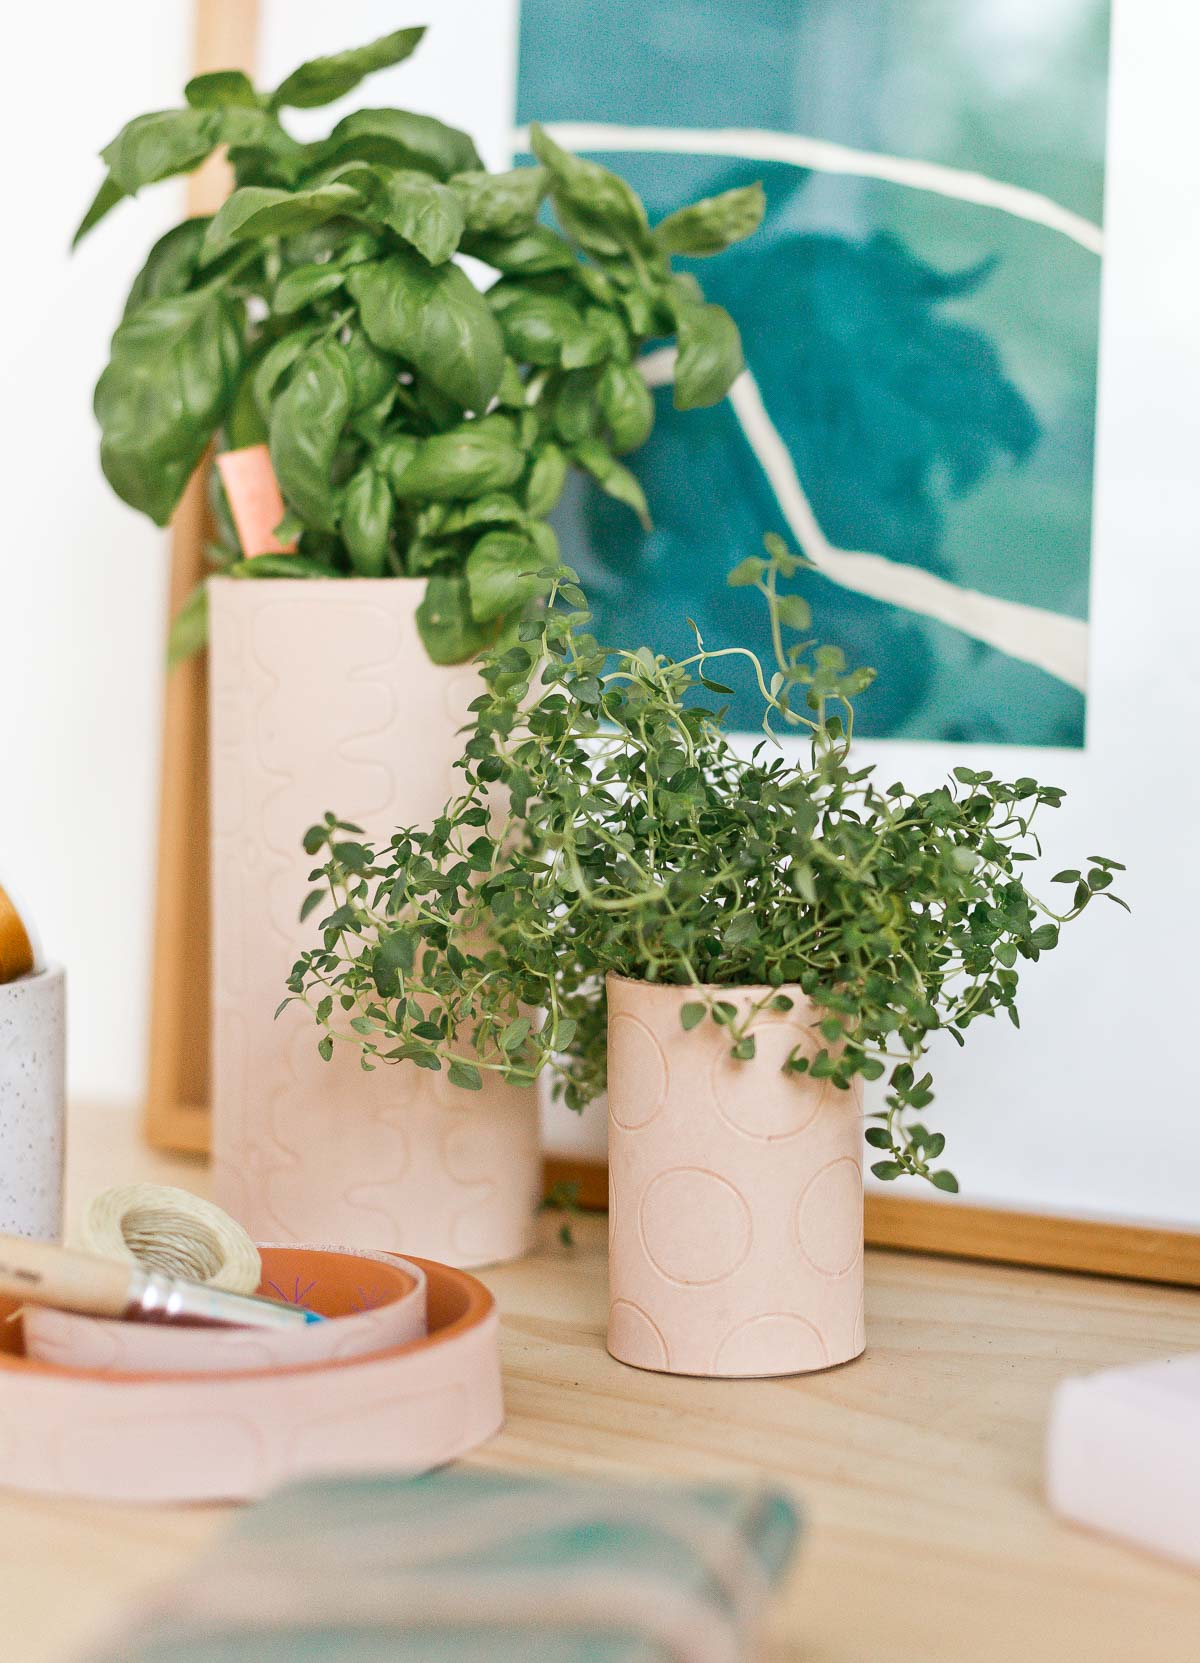 Create a chic indoor herb garden with DIY embossed leather planters. #leather #diy #leatherdiy #homedecor #workspace #desk #indoorherbgarden #polkadot #herbs